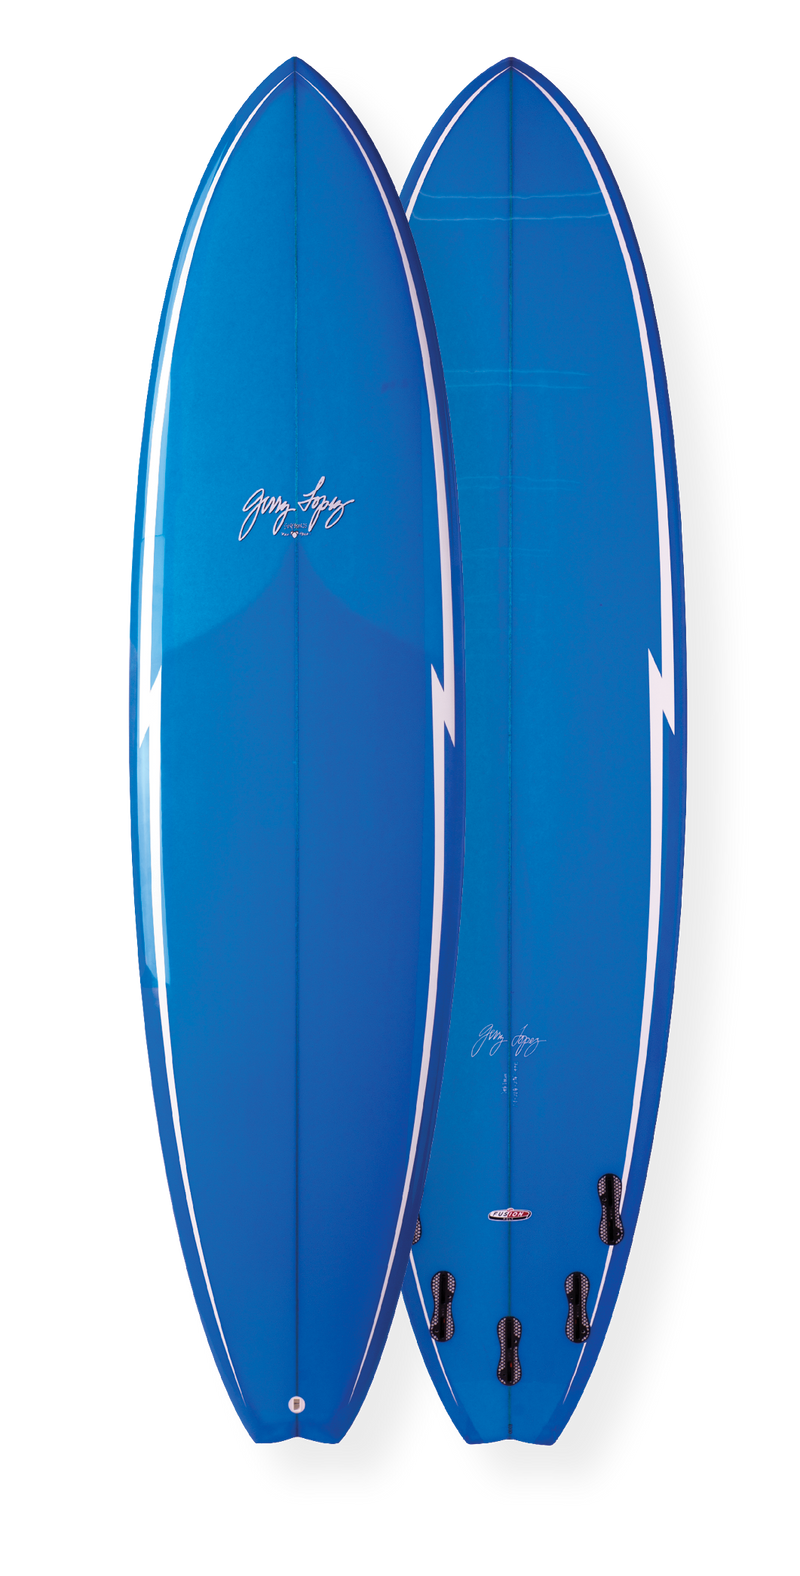 Little Darlin 7'0 - AKWA SURF